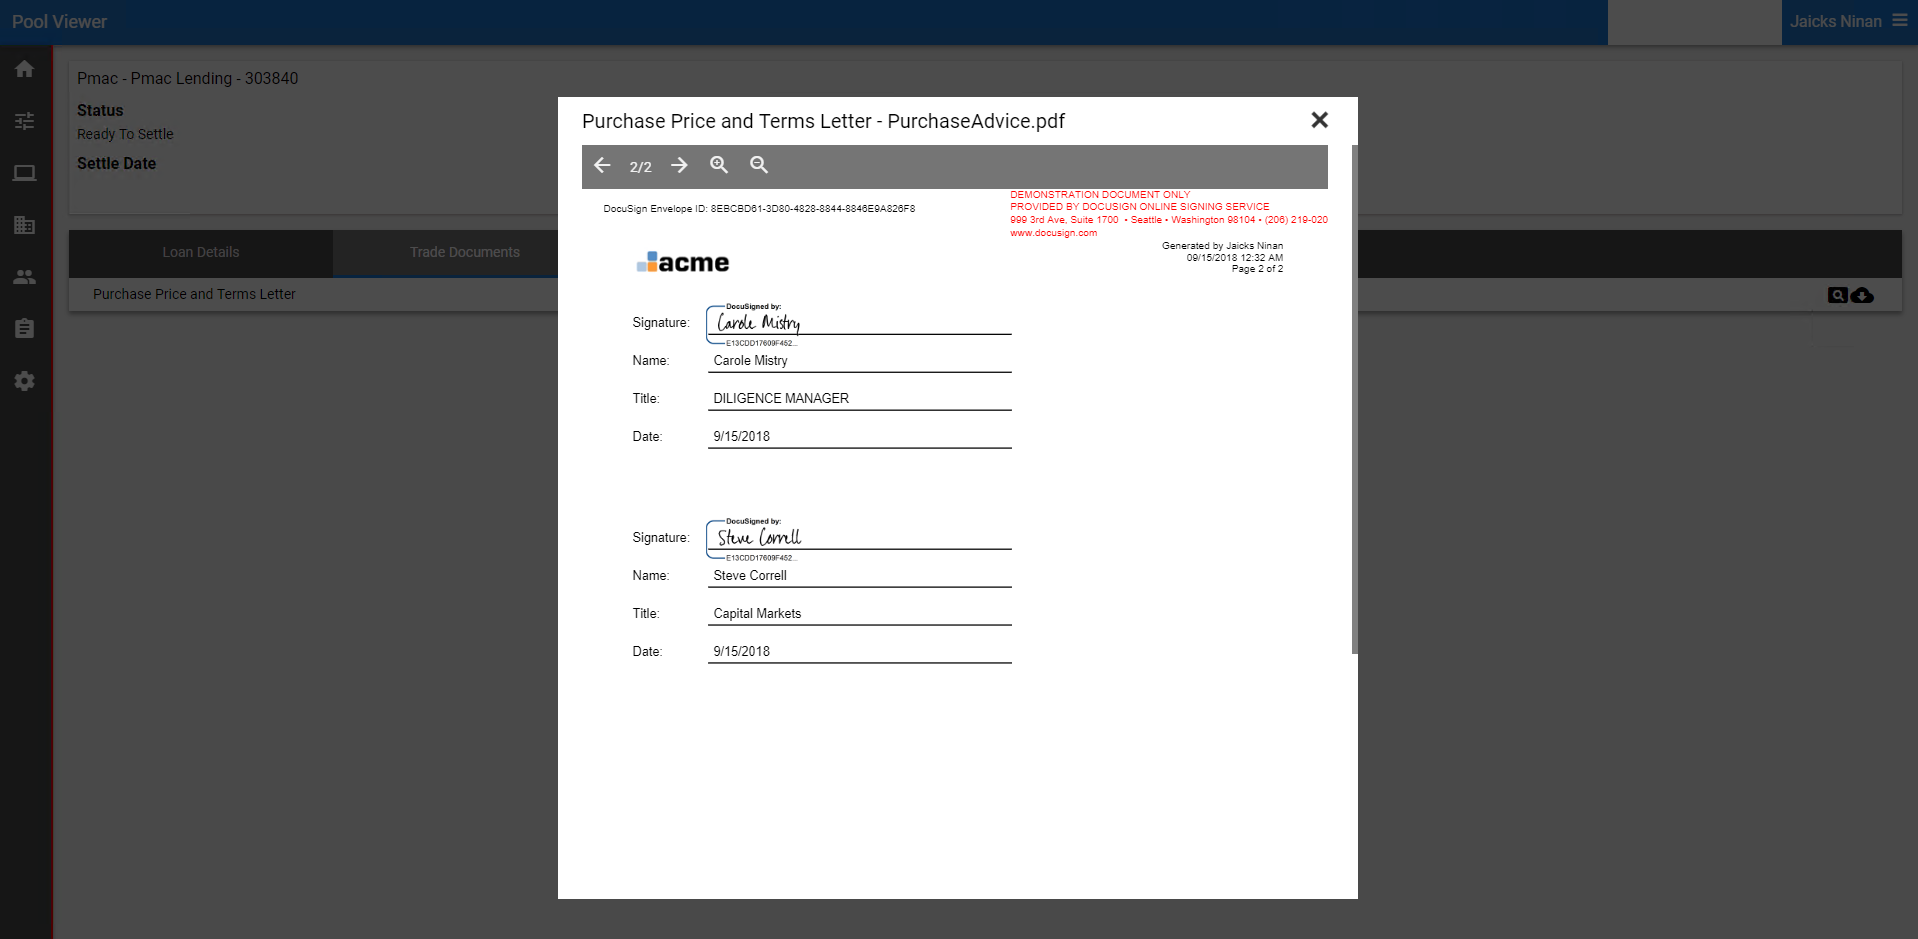 Purchase advice status and signed doc loaded into Lms.Connect automatically